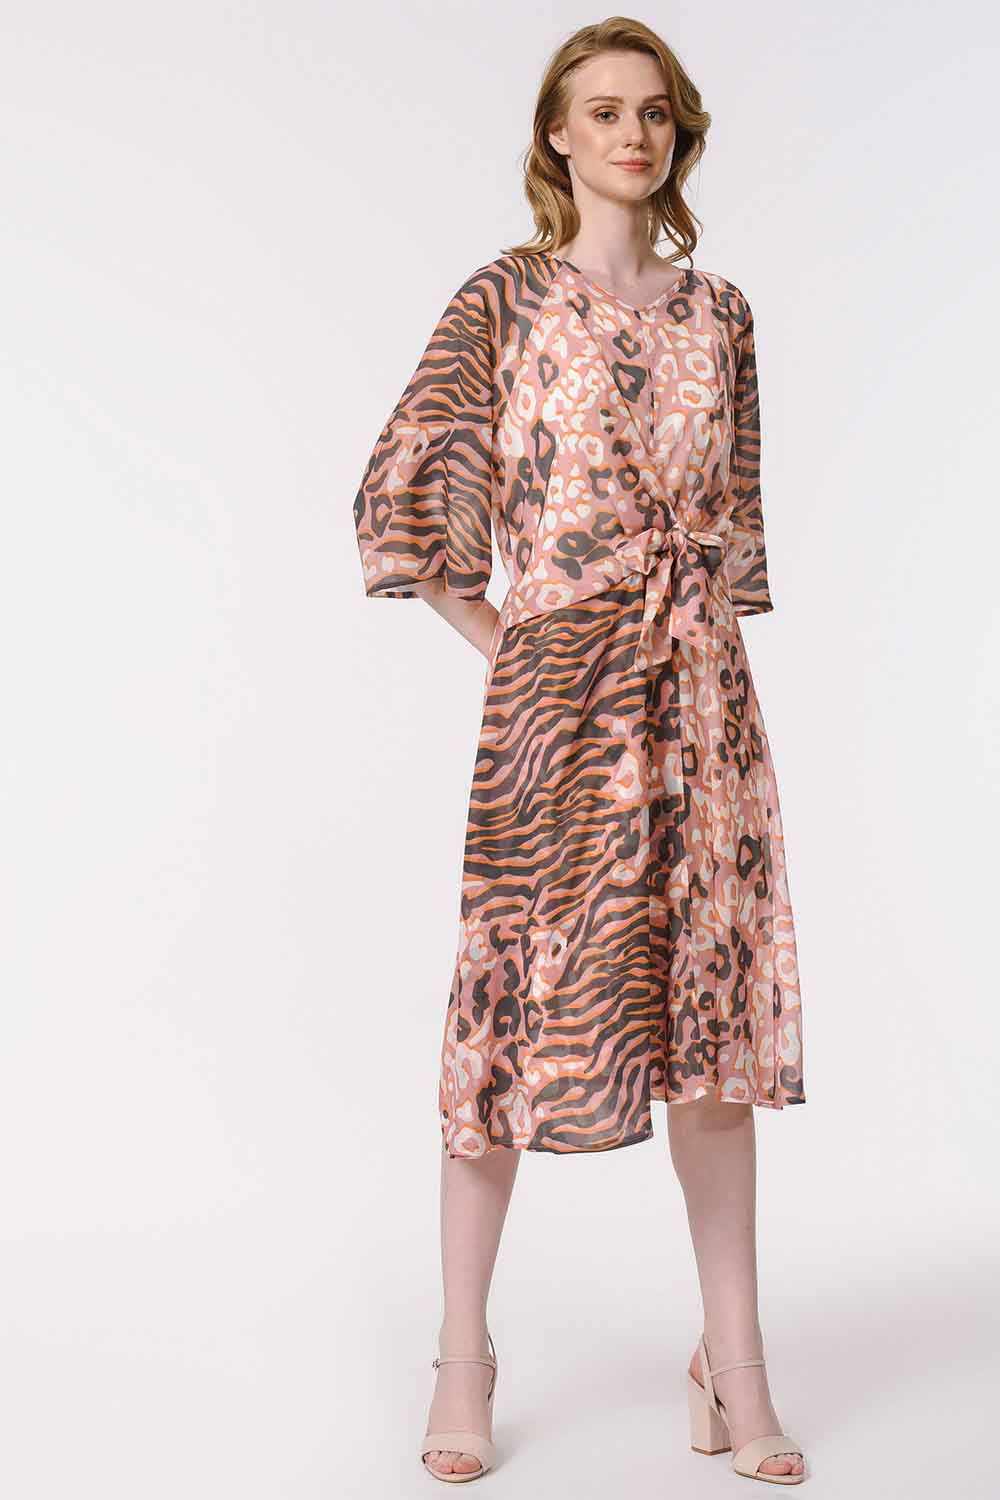 MIZALLE Leopard Patterned Dress (Pink) (1)